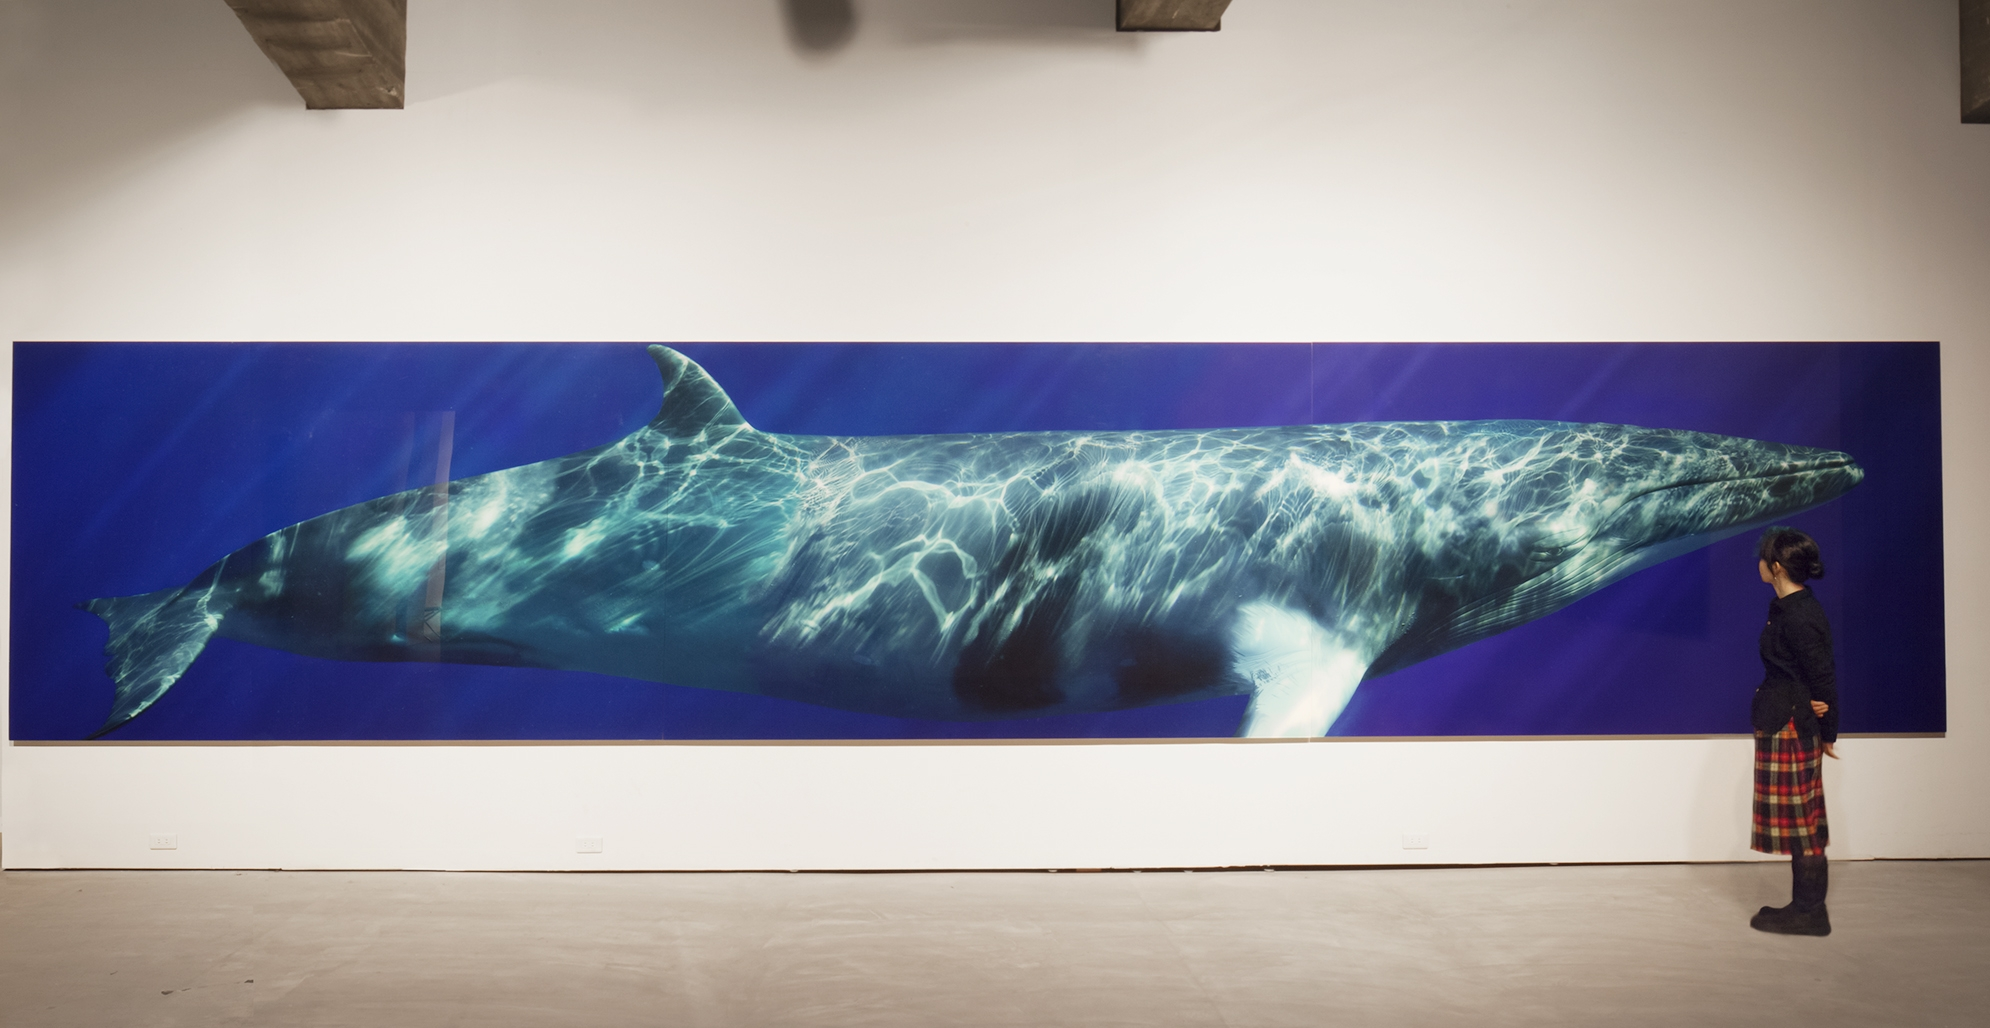 Beautiful Whale, 2008 to 2014 - The final life-size portraits created for Beautiful Whale using the Hasselblad H3D-50 camera and 80mm portrait lens underwater. A selection of these prints are also on display year around at The Focus Gallery, in Chatham, MA.